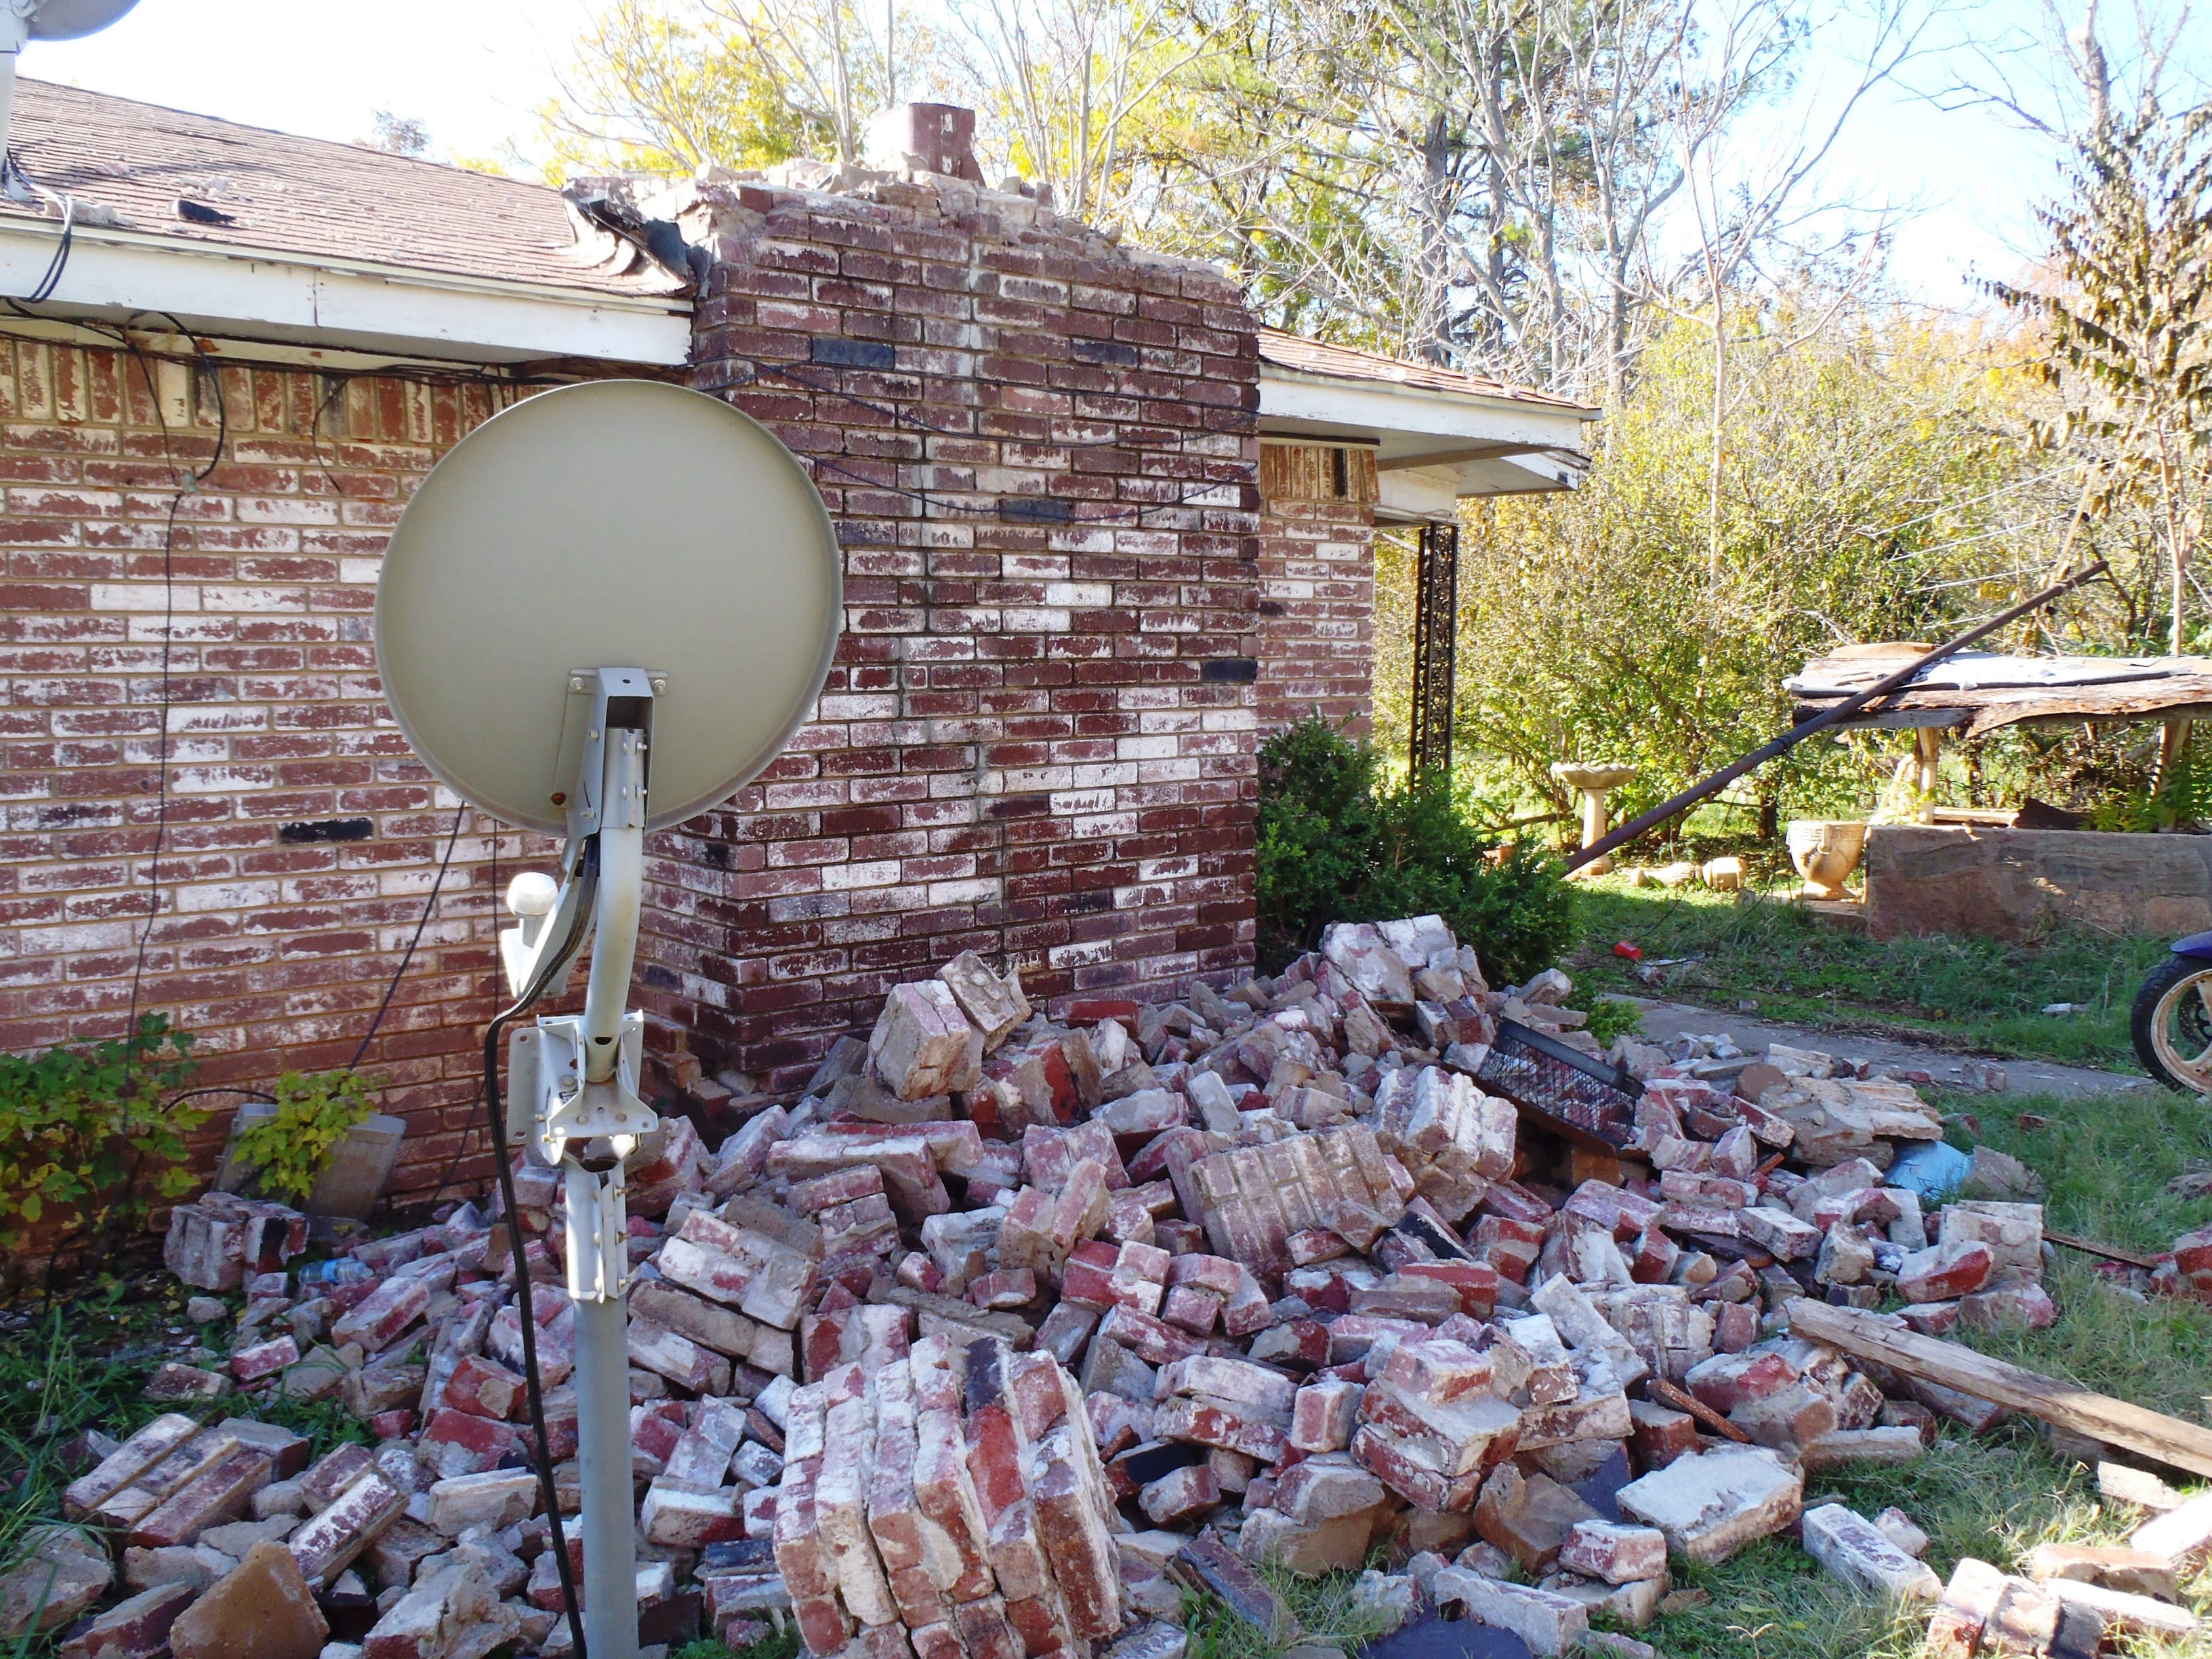 Damage caused by the magnitude 5.7 earthquake near Prague Oklahoma, November 6, 2011. Unreinforced stone and brick buildings (especially chimneys) are some of the most vulnerable structures in any earthquake.